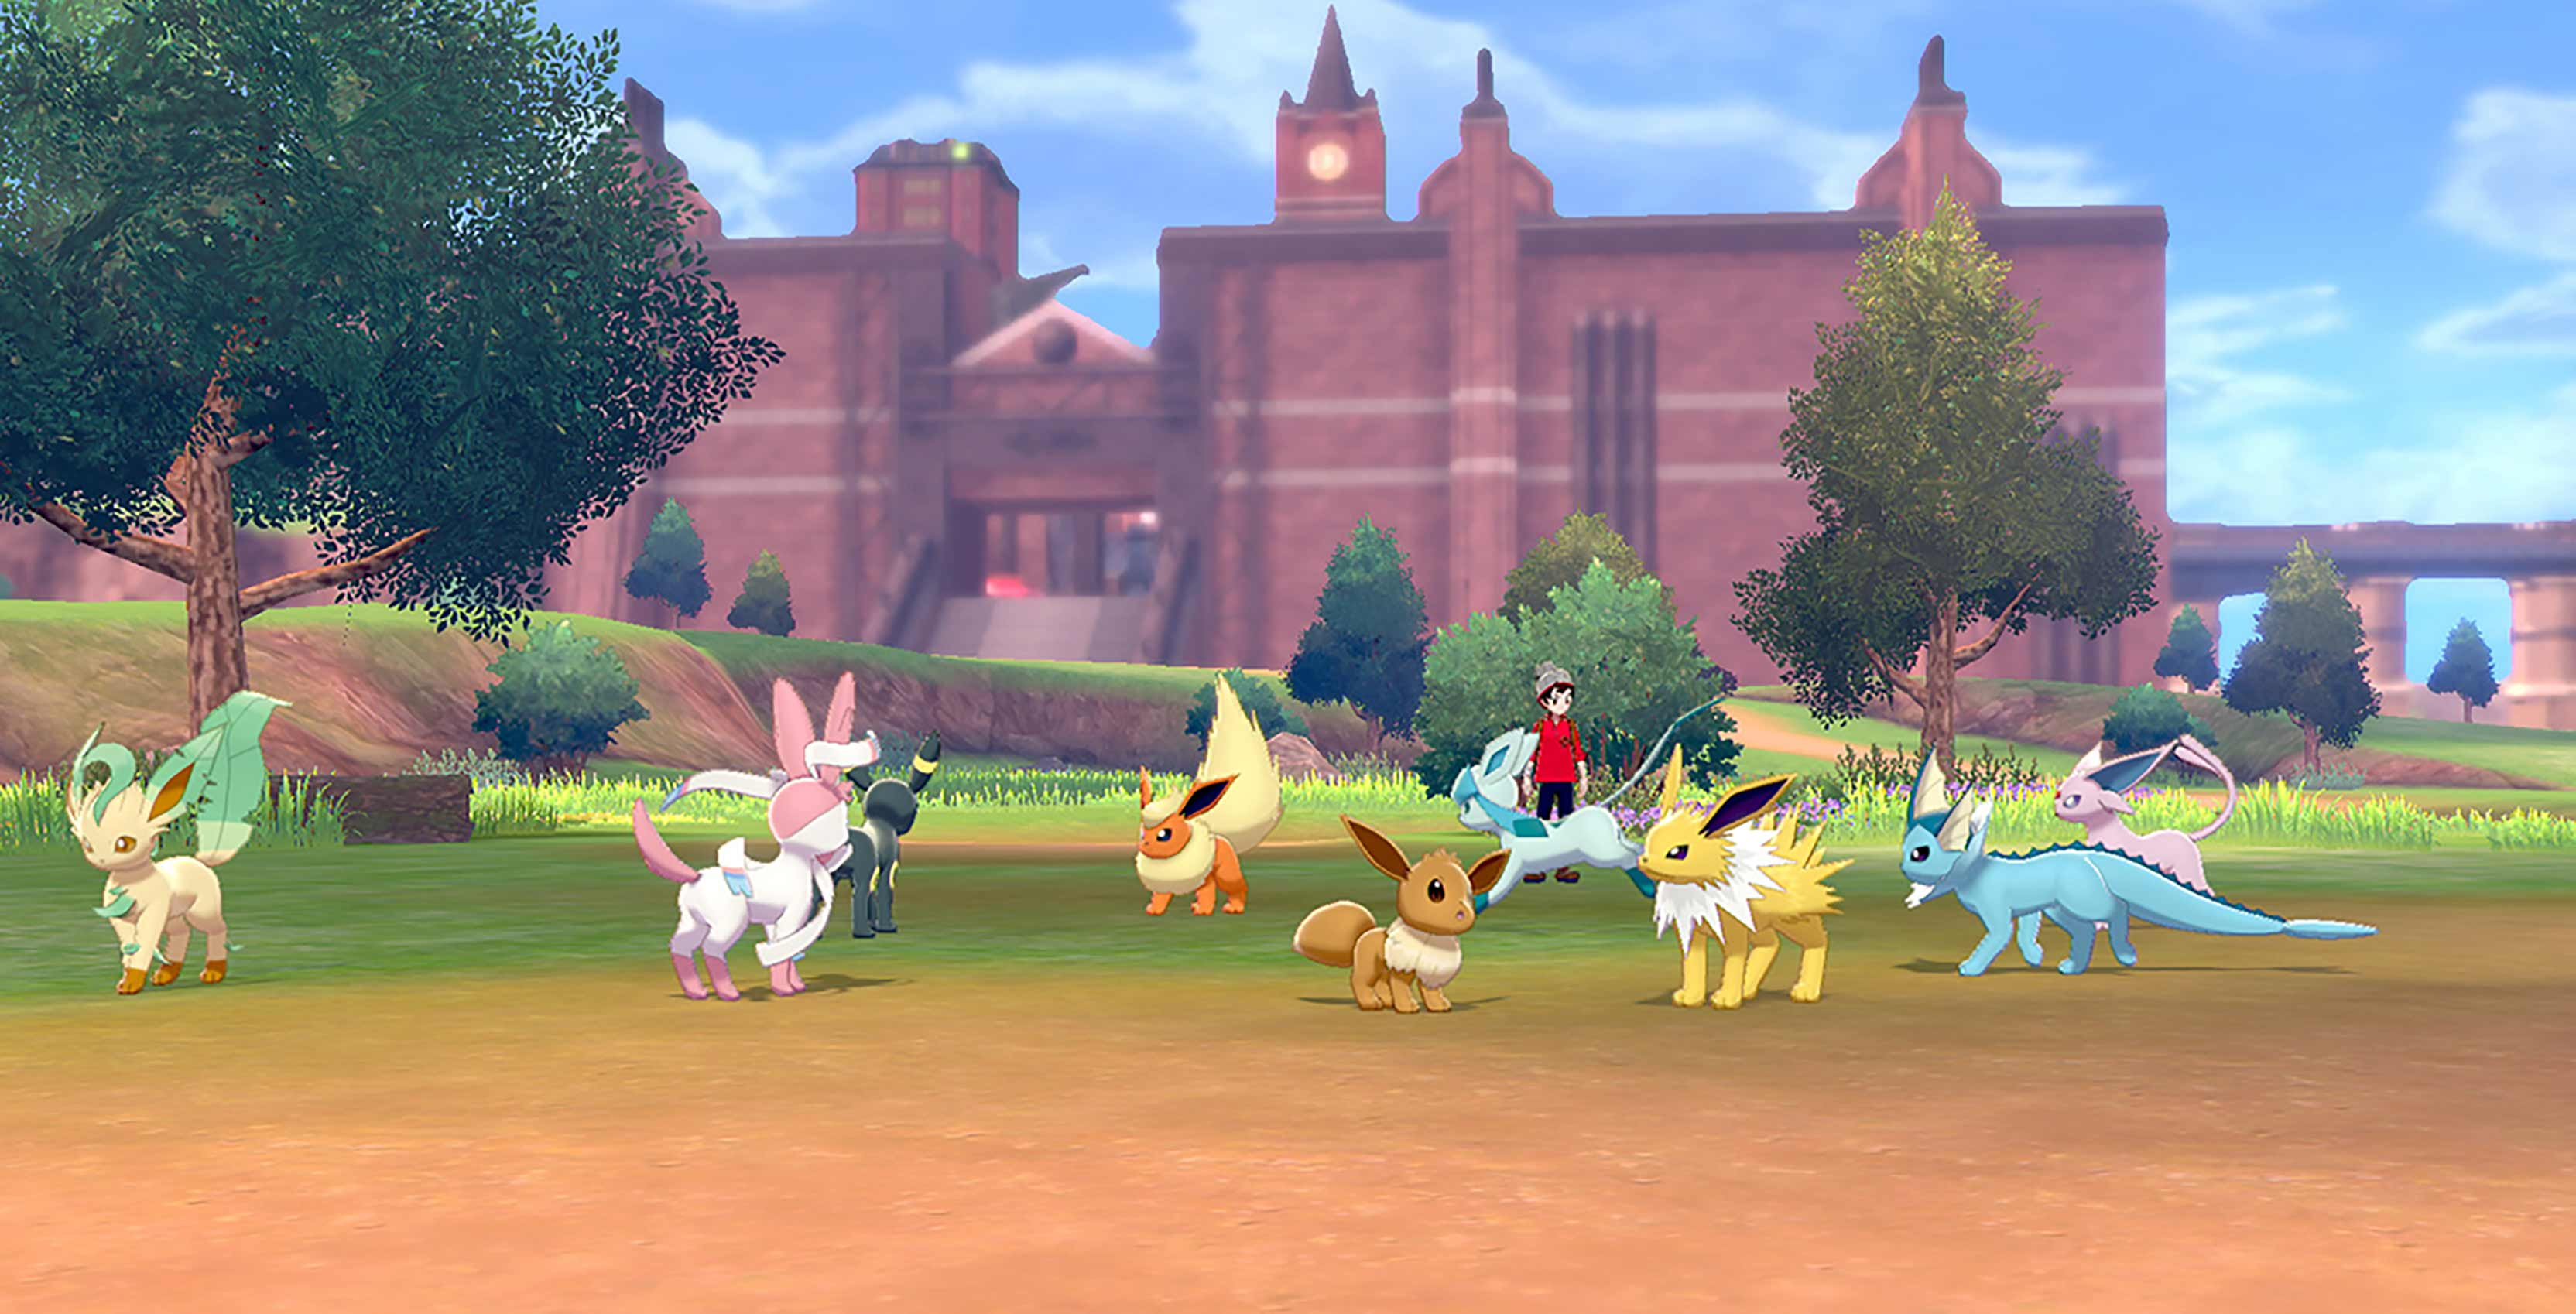 Amid controversy, the Pokemon Sword & Shield launch event has been canceled screenshot